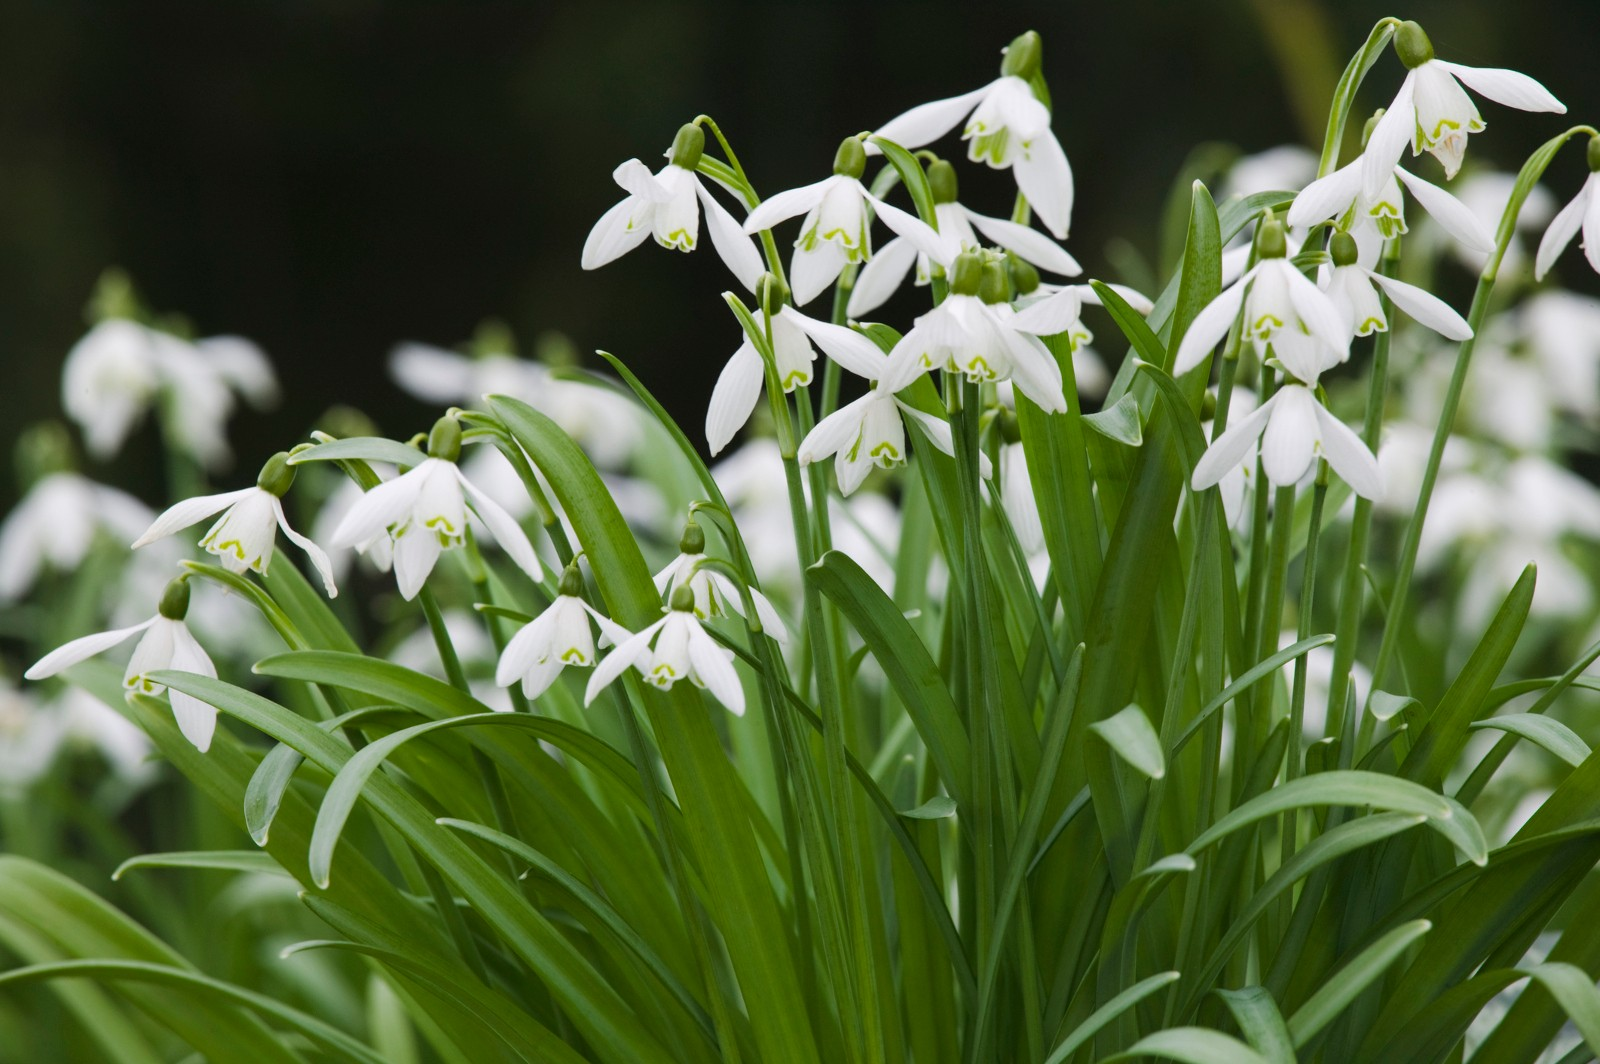 Snowdrops, Galanthus nivalis, in flower in March, Teignmouth, Devon, Great Britain.